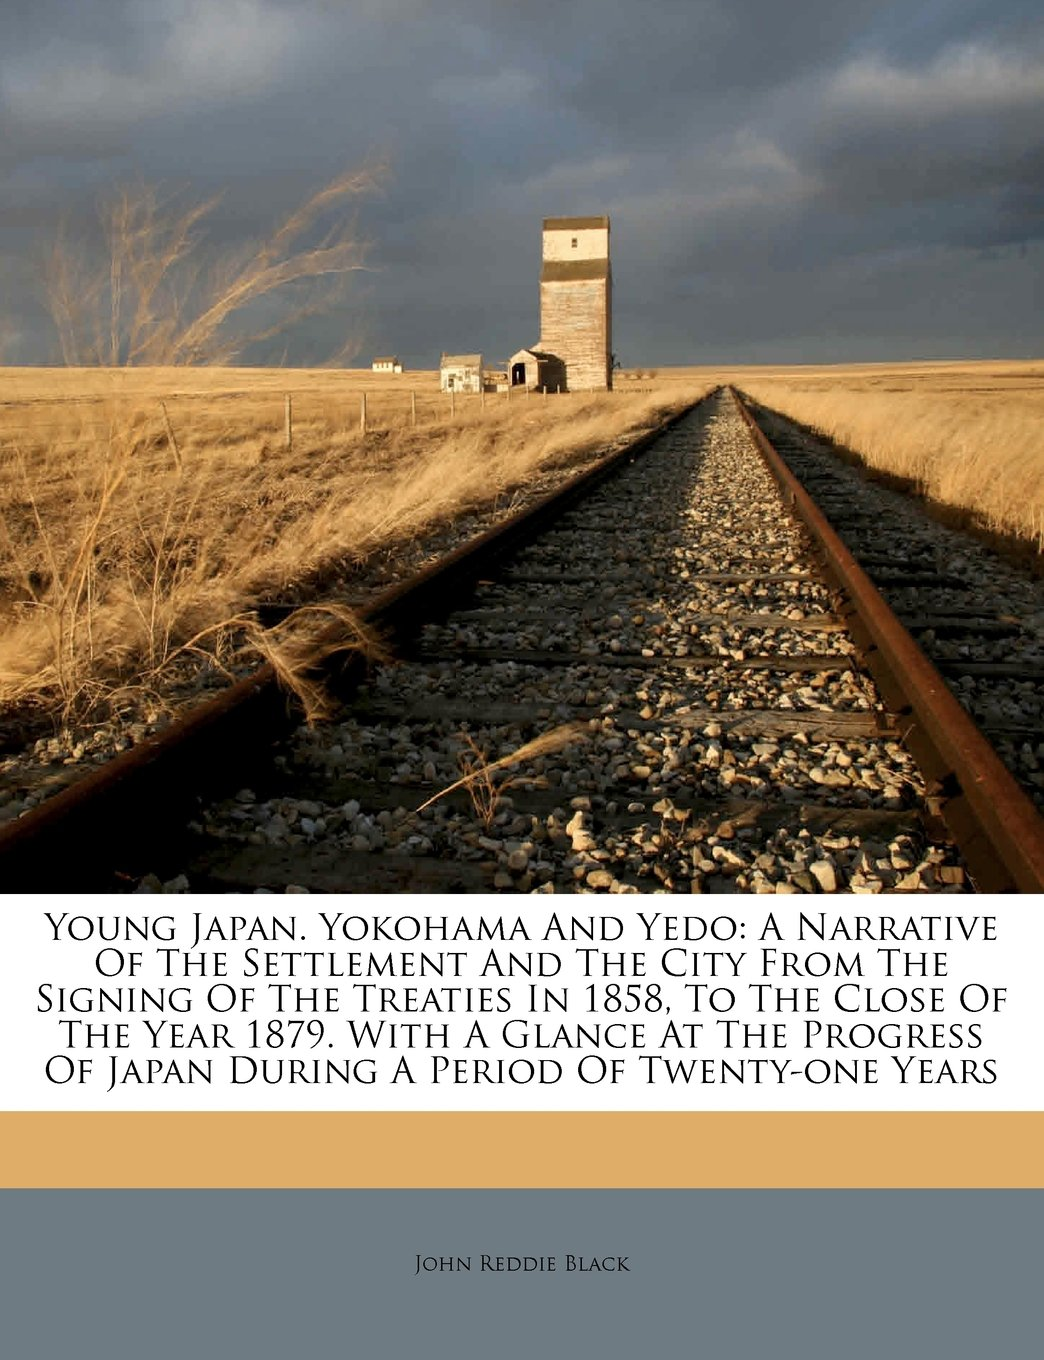 Young Japan. Yokohama And Yedo: A Narrative Of The Settlement And The City From The Signing Of The Treaties In 1858, To The Close Of The Year 1879. ... Of Japan During A Period Of Twenty-one Years pdf